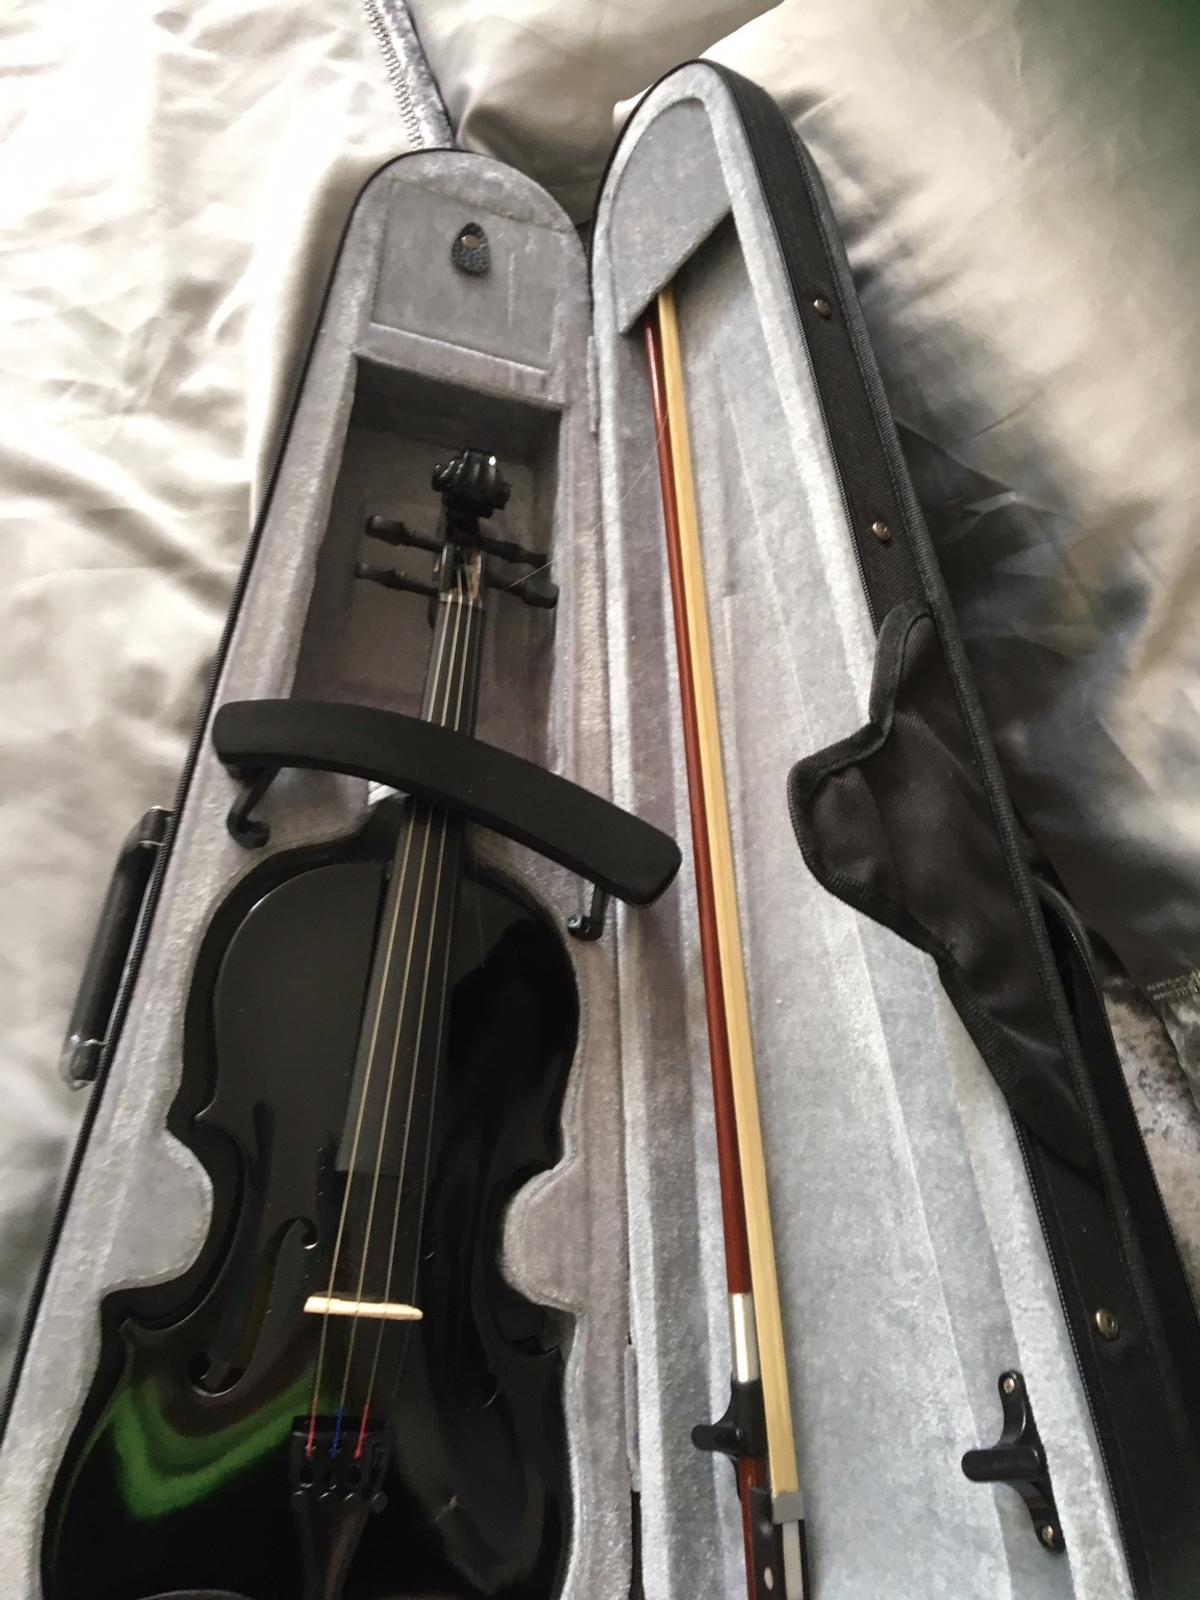 Nearly new Violin only used a few times comes with case